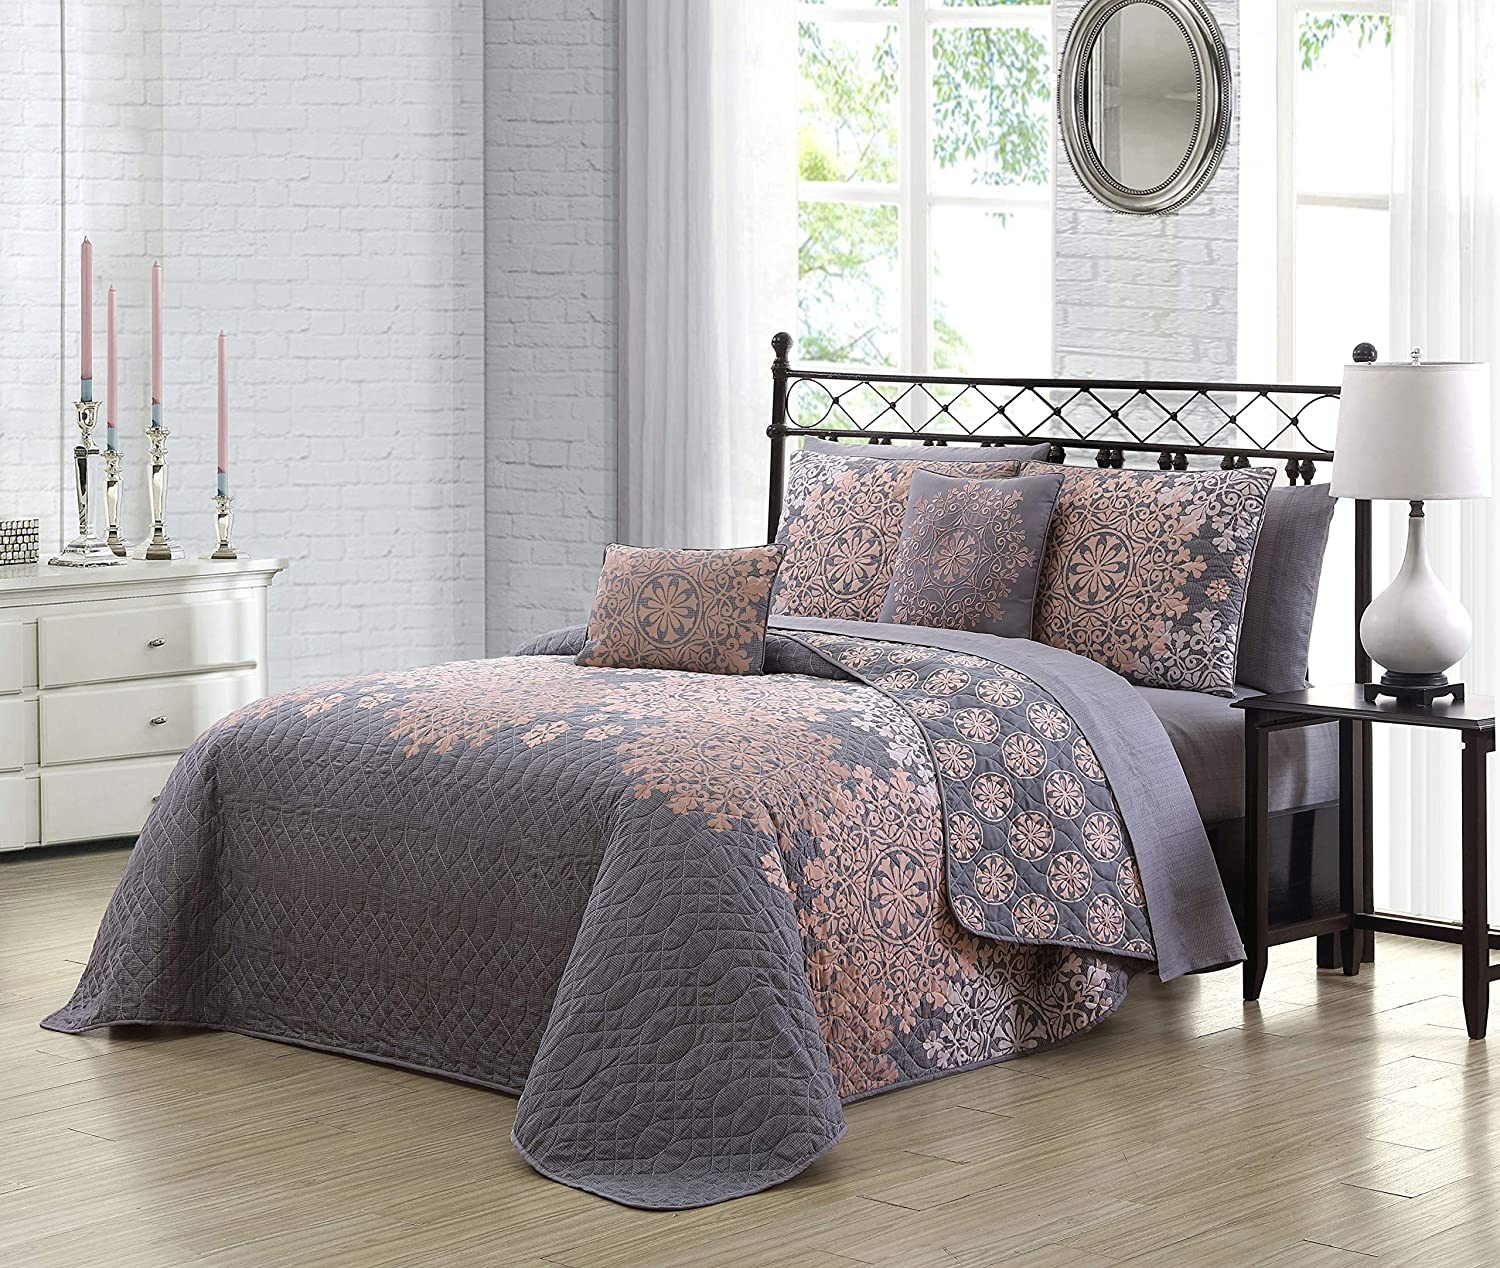 Geneva Home Fashion Amber 9pc Reversible Quilt with Sheet Bedding Set, Queen, Grey/Blush